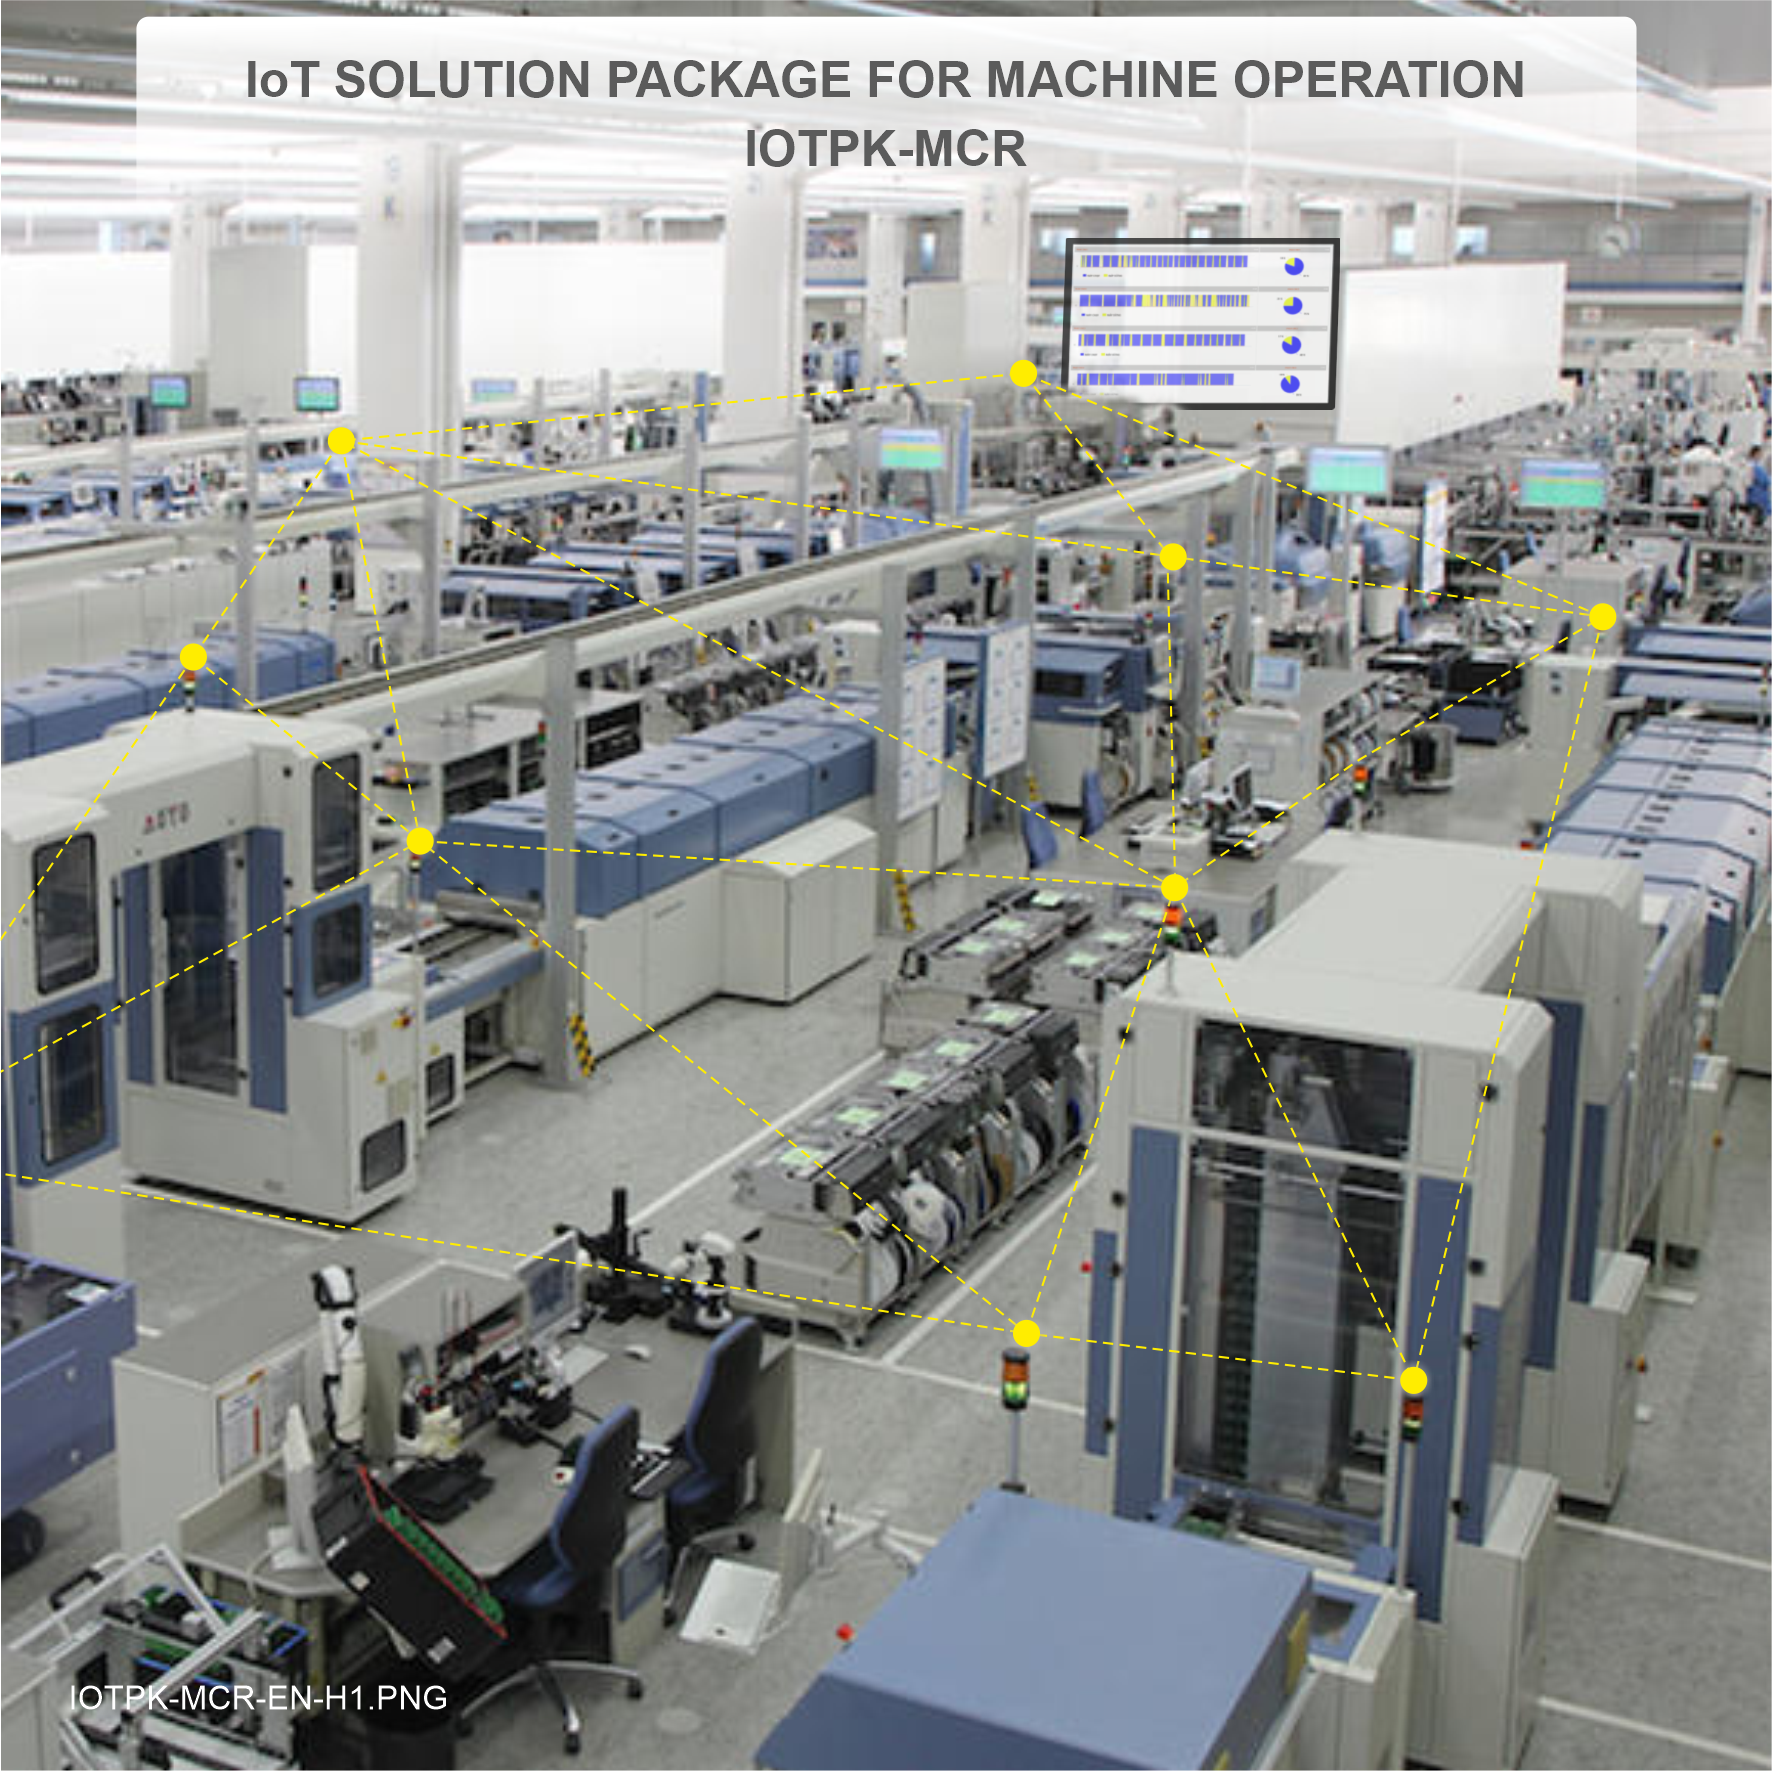 IoT SOLUTION PACKAGE FOR MACHINE OPERATION